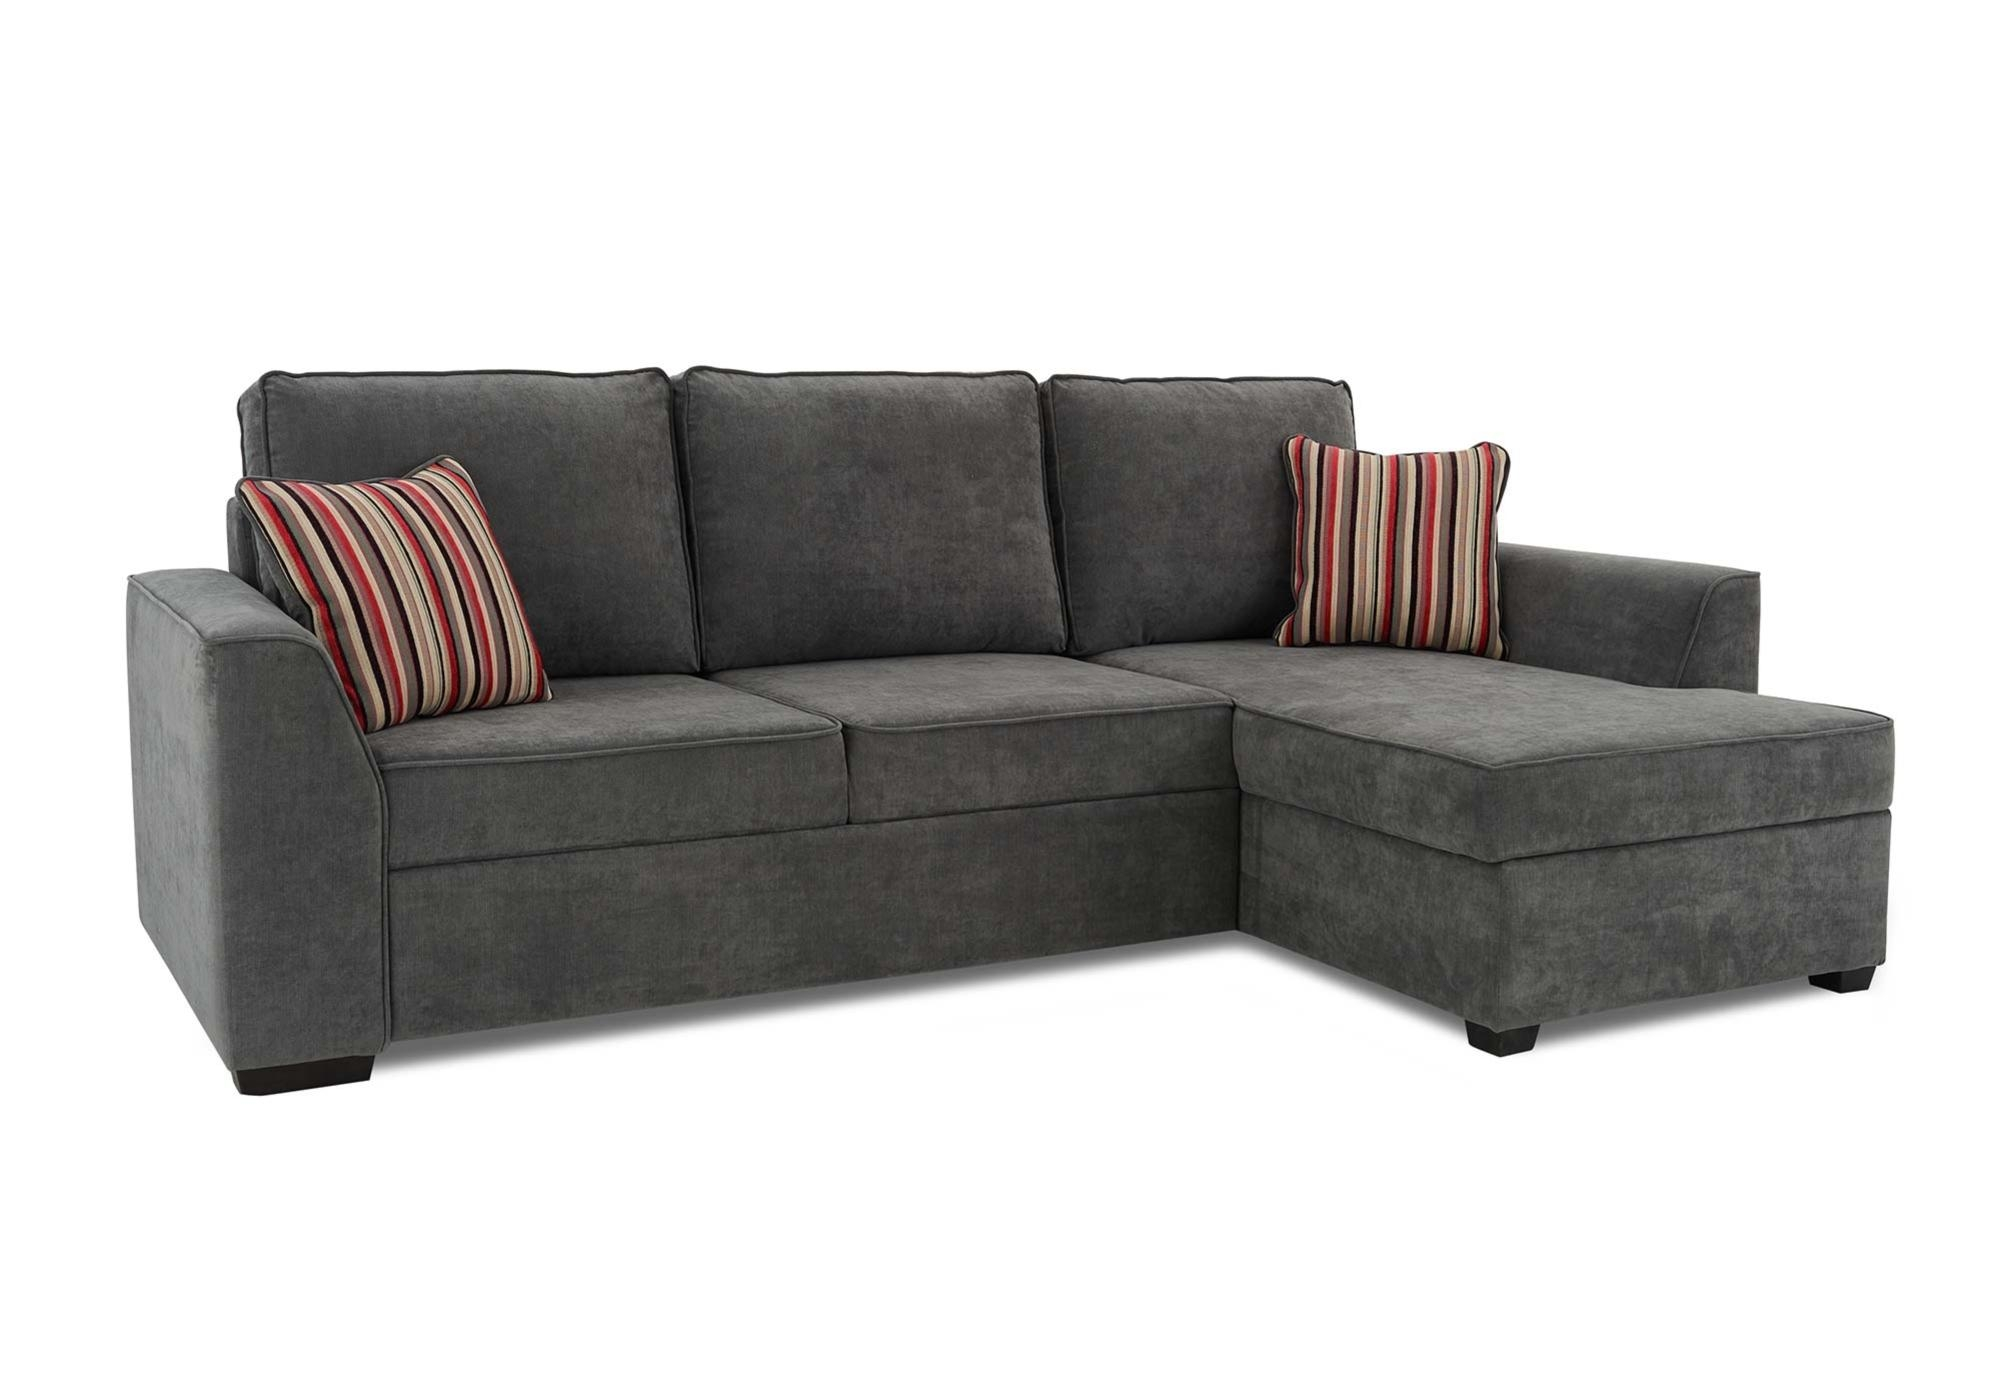 Beautiful Sofa Bed With Storage Chaise Awesome S11 Hometosoucom L With Chaise Sofa Beds With Storage (Image 1 of 20)